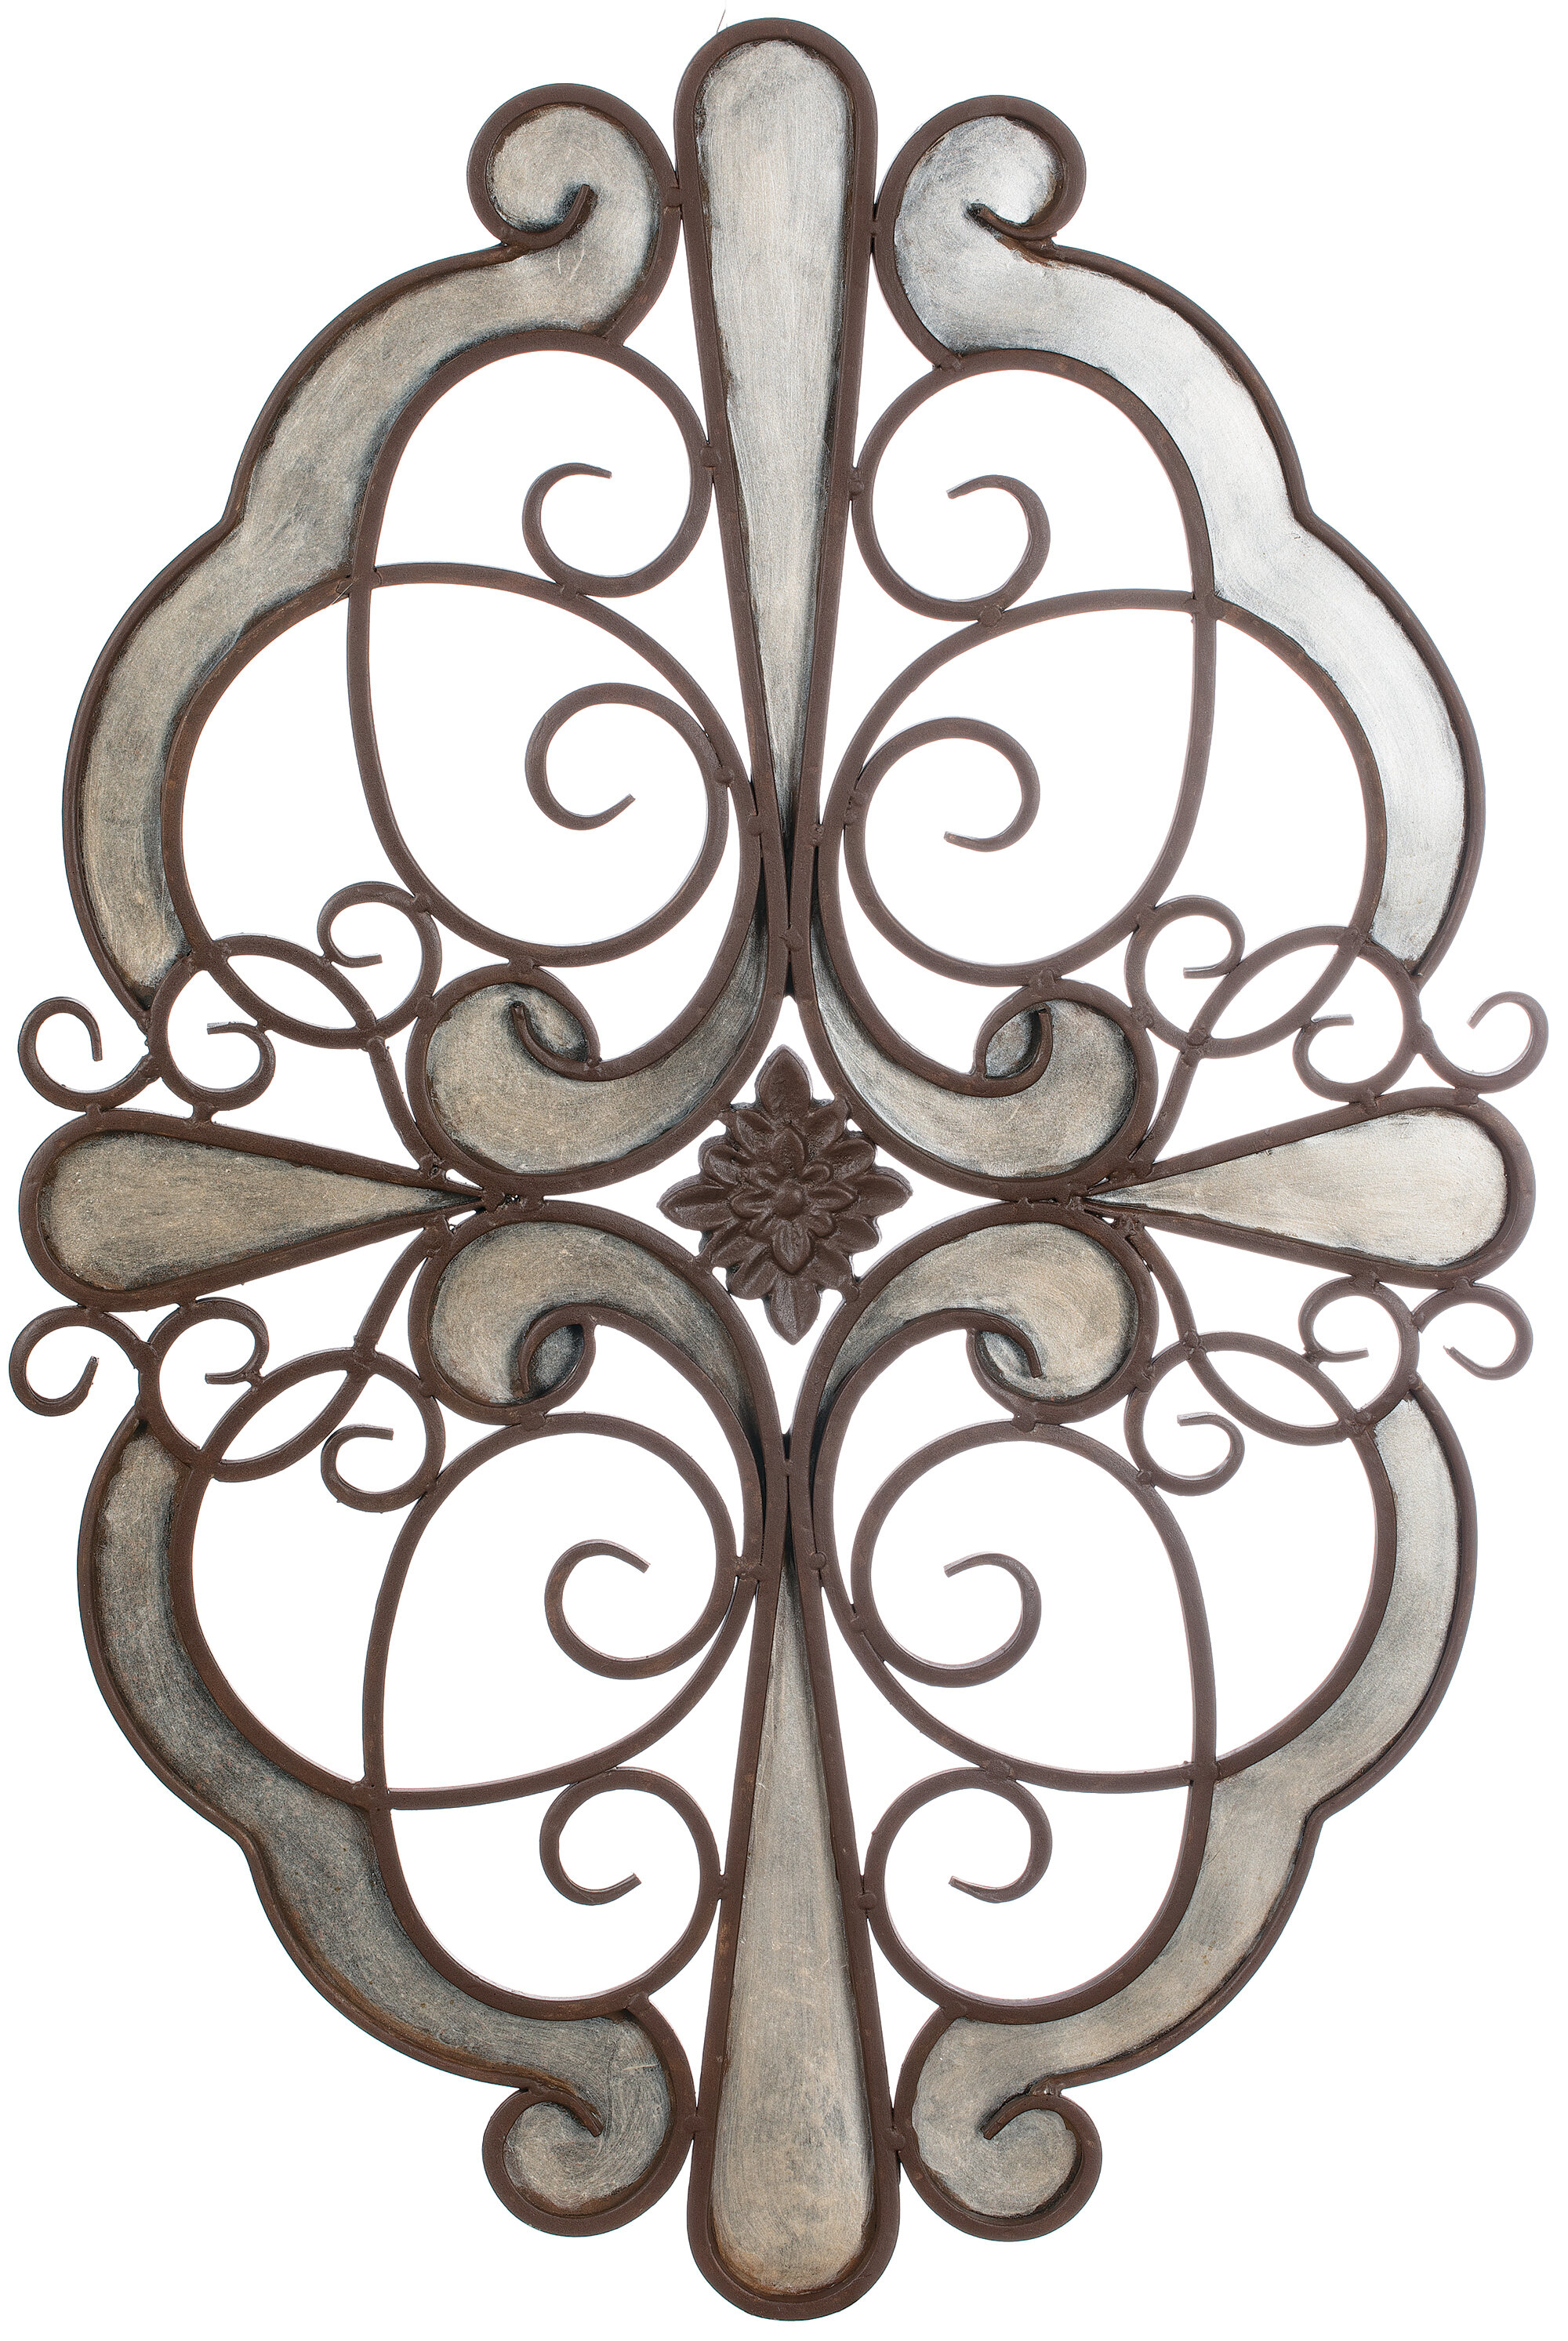 Wood Medallion Wall Decor | Wayfair with Small Medallion Wall Decor (Image 29 of 30)